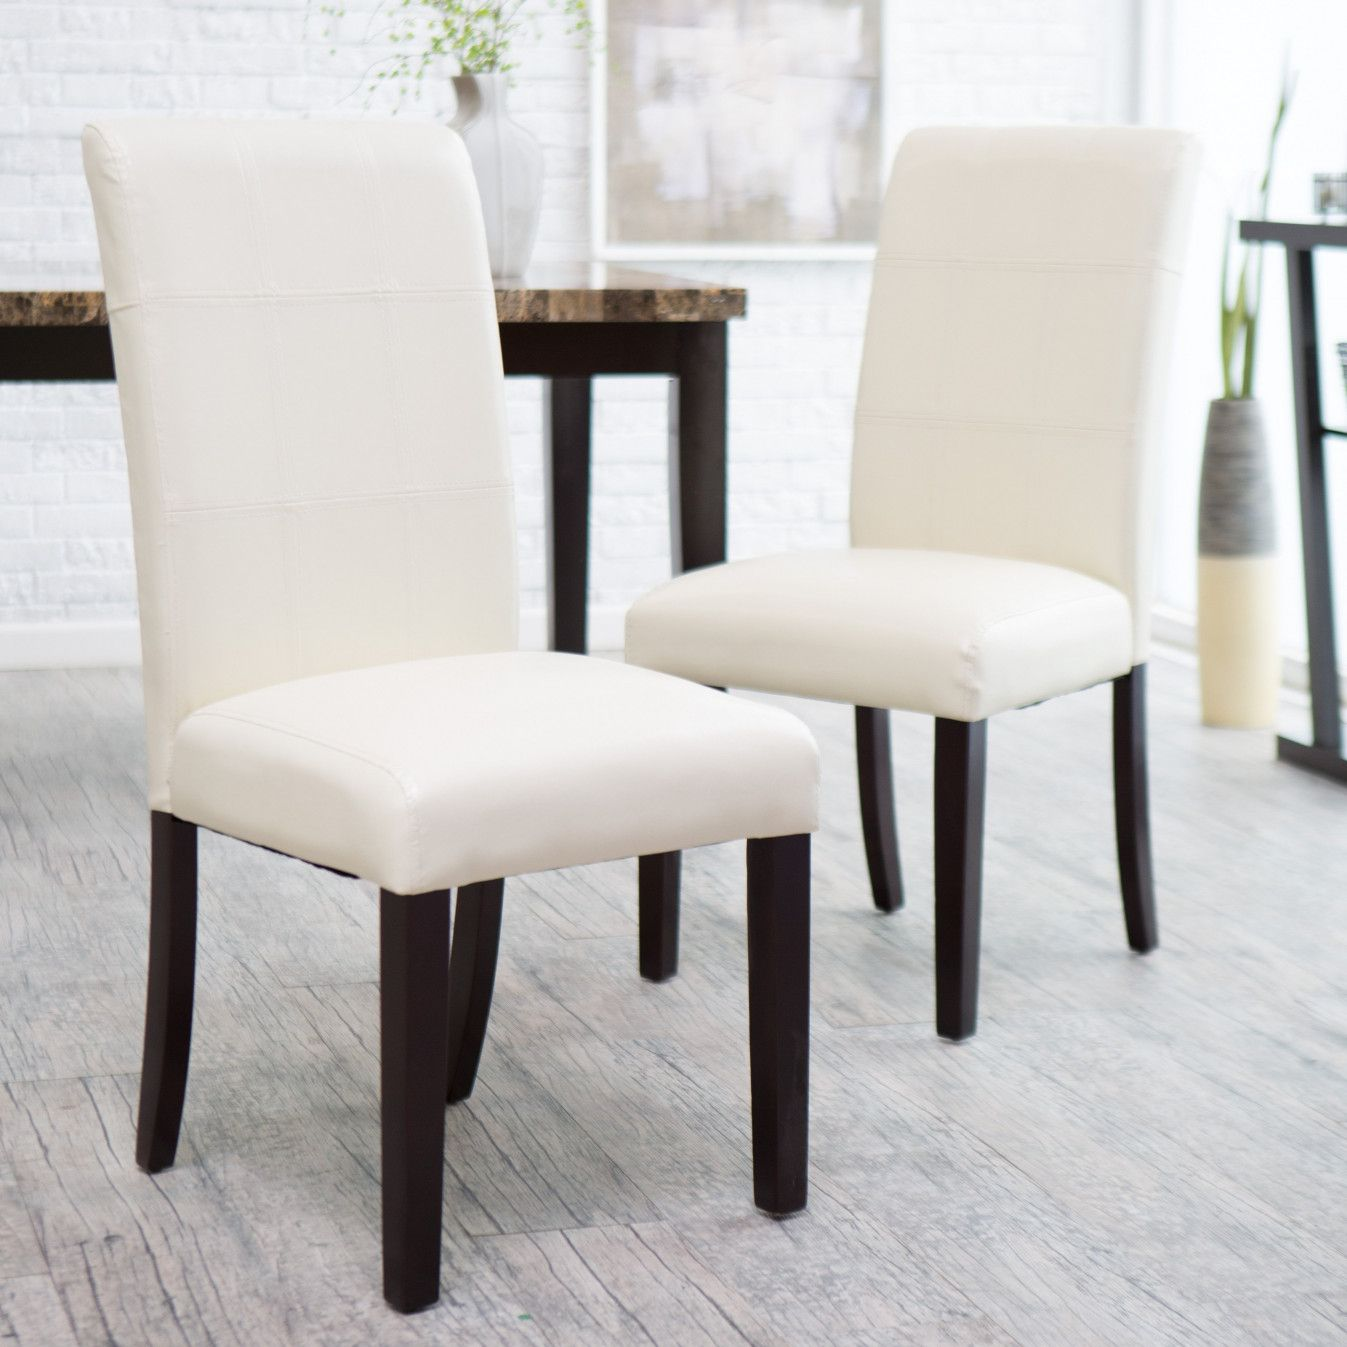 55 Ivory Leather Dining Room Chairs  Modern Rustic Furniture Captivating Ivory Leather Dining Room Chairs Inspiration Design